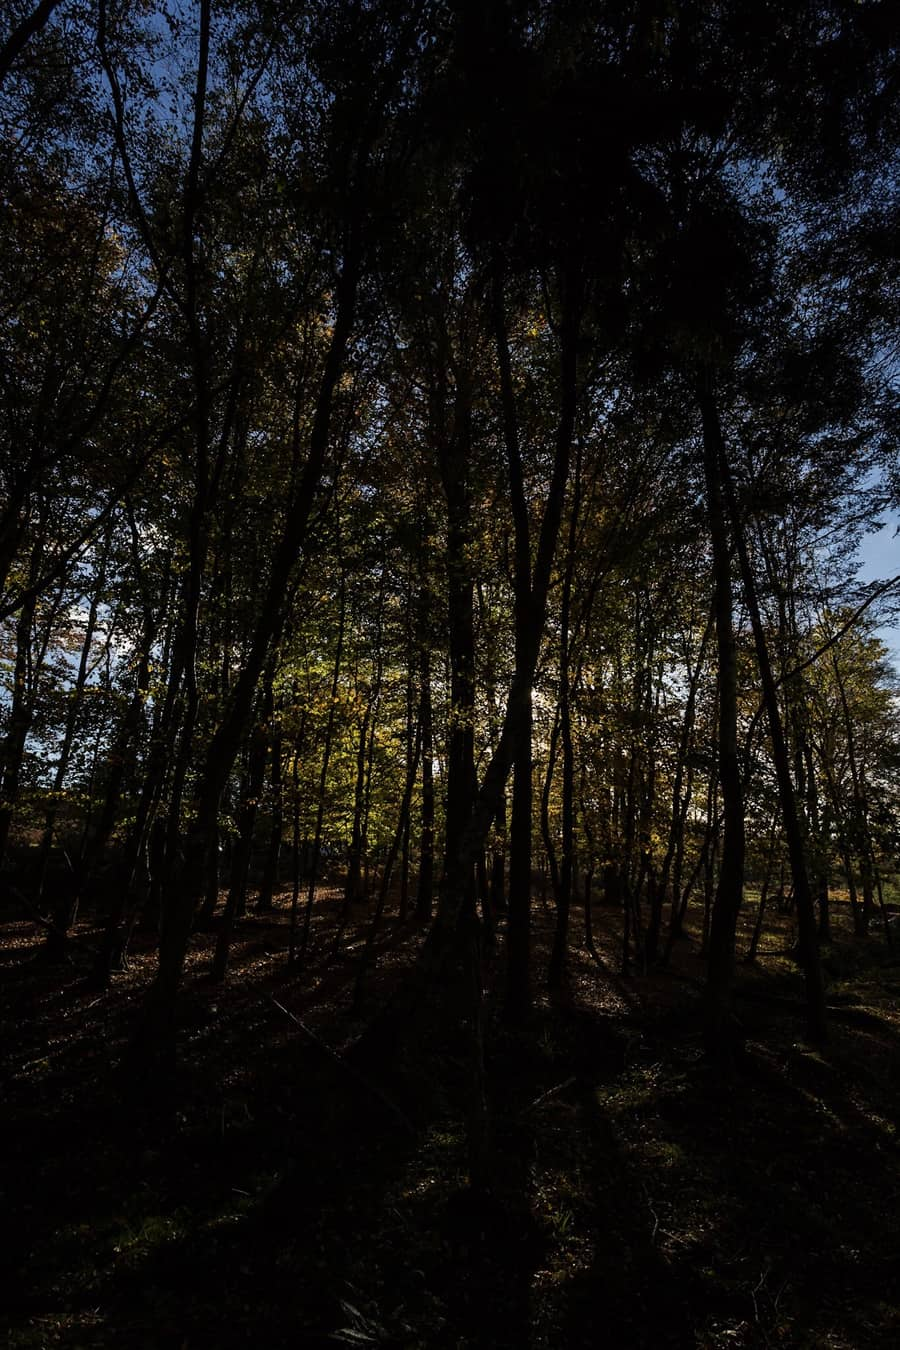 The picture of the sun streaming in through the trees - the RAW unedited file